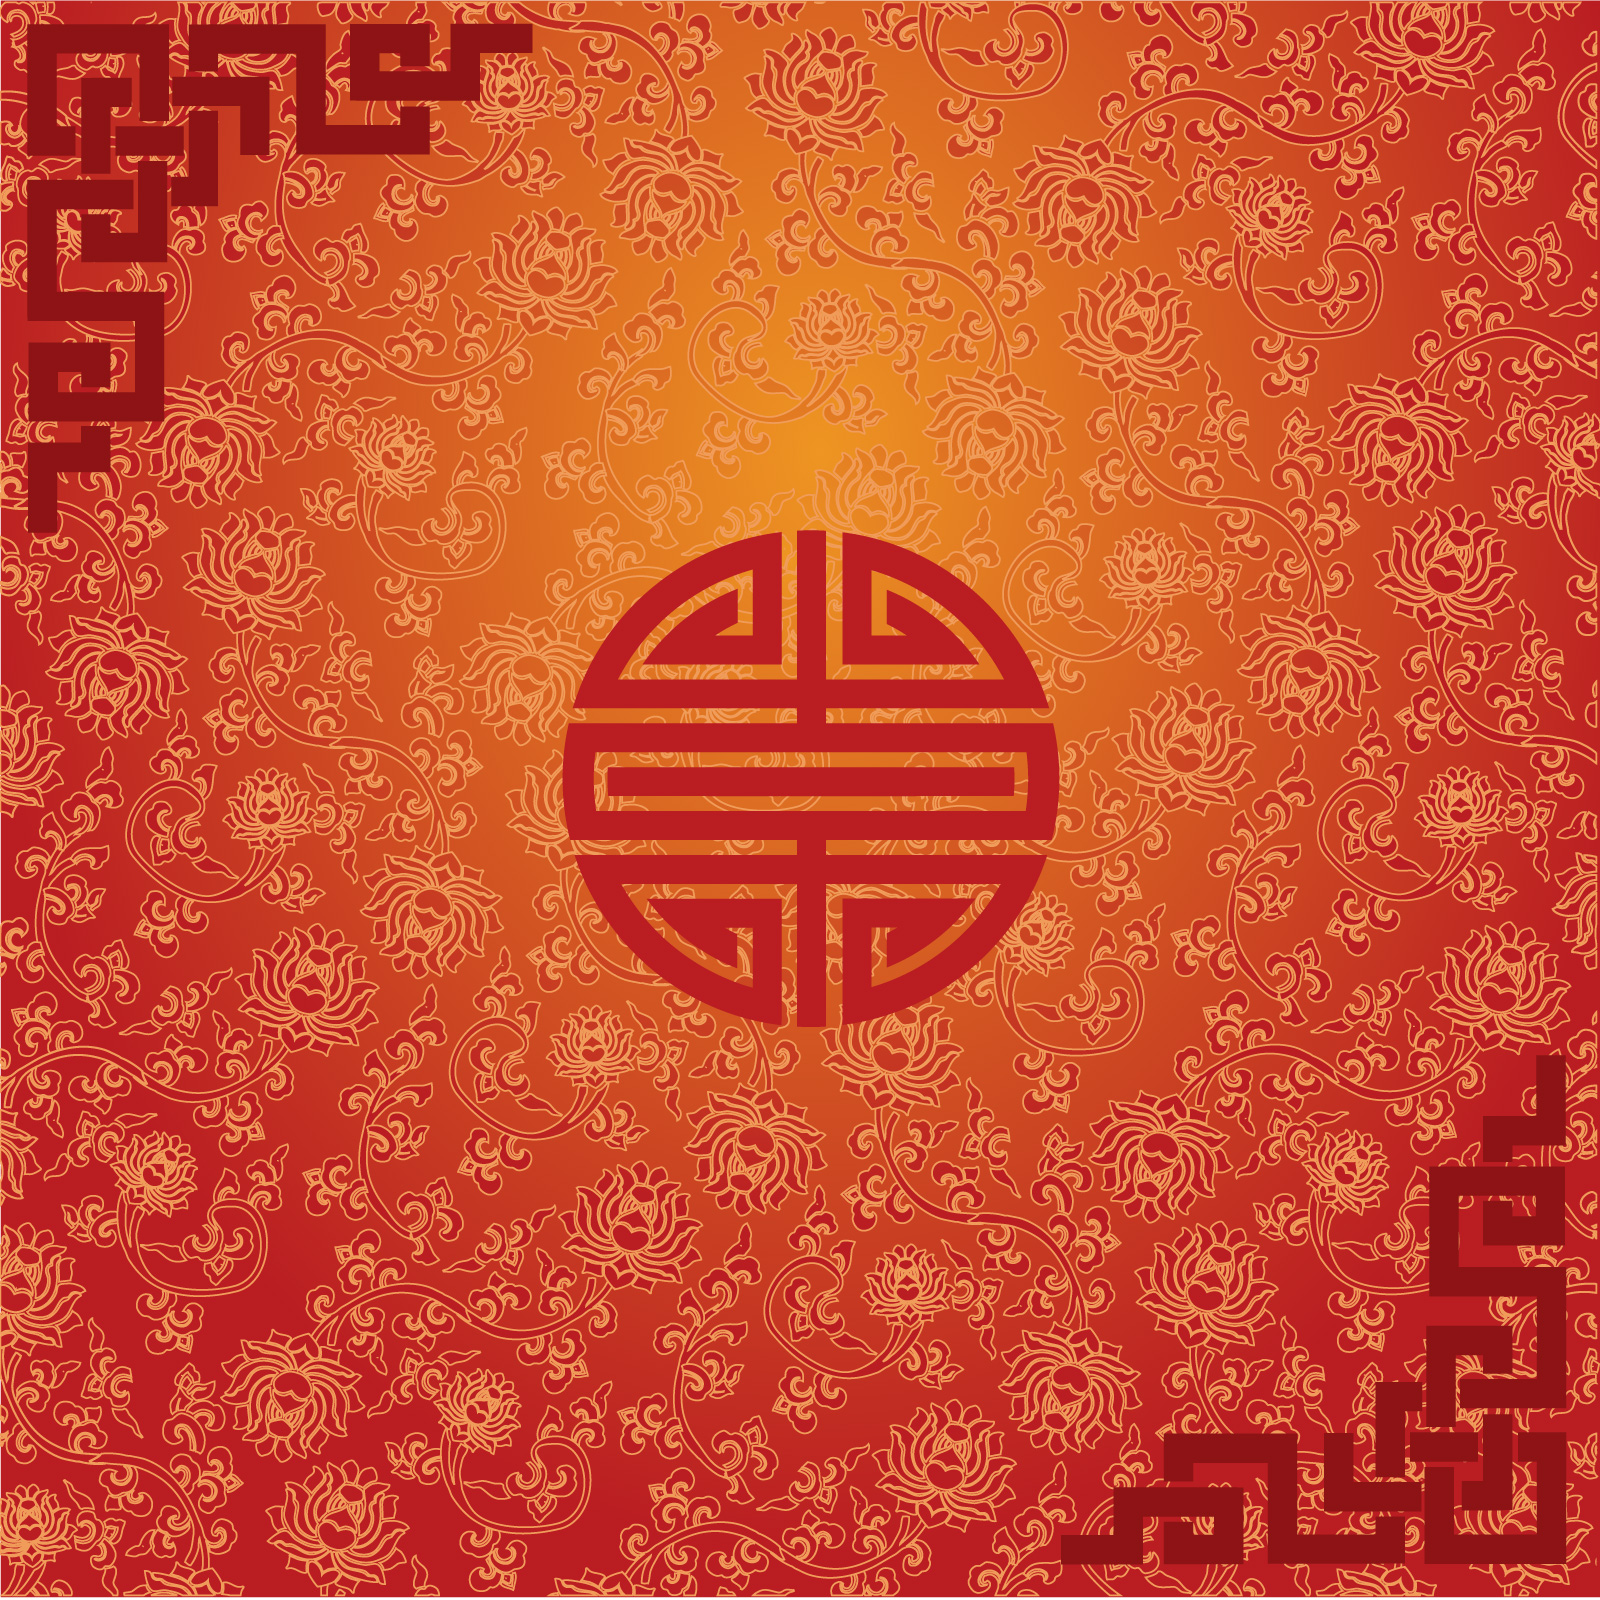 chinesefontdesign.com 2017 04 06 10 01 35 Chinese traditional classical style festive celebrate background pattern texture Illustrations Vectors ESP #.4 Chinese traditional style background Chinese classical style background China celebrates background Celebrate background texture esp